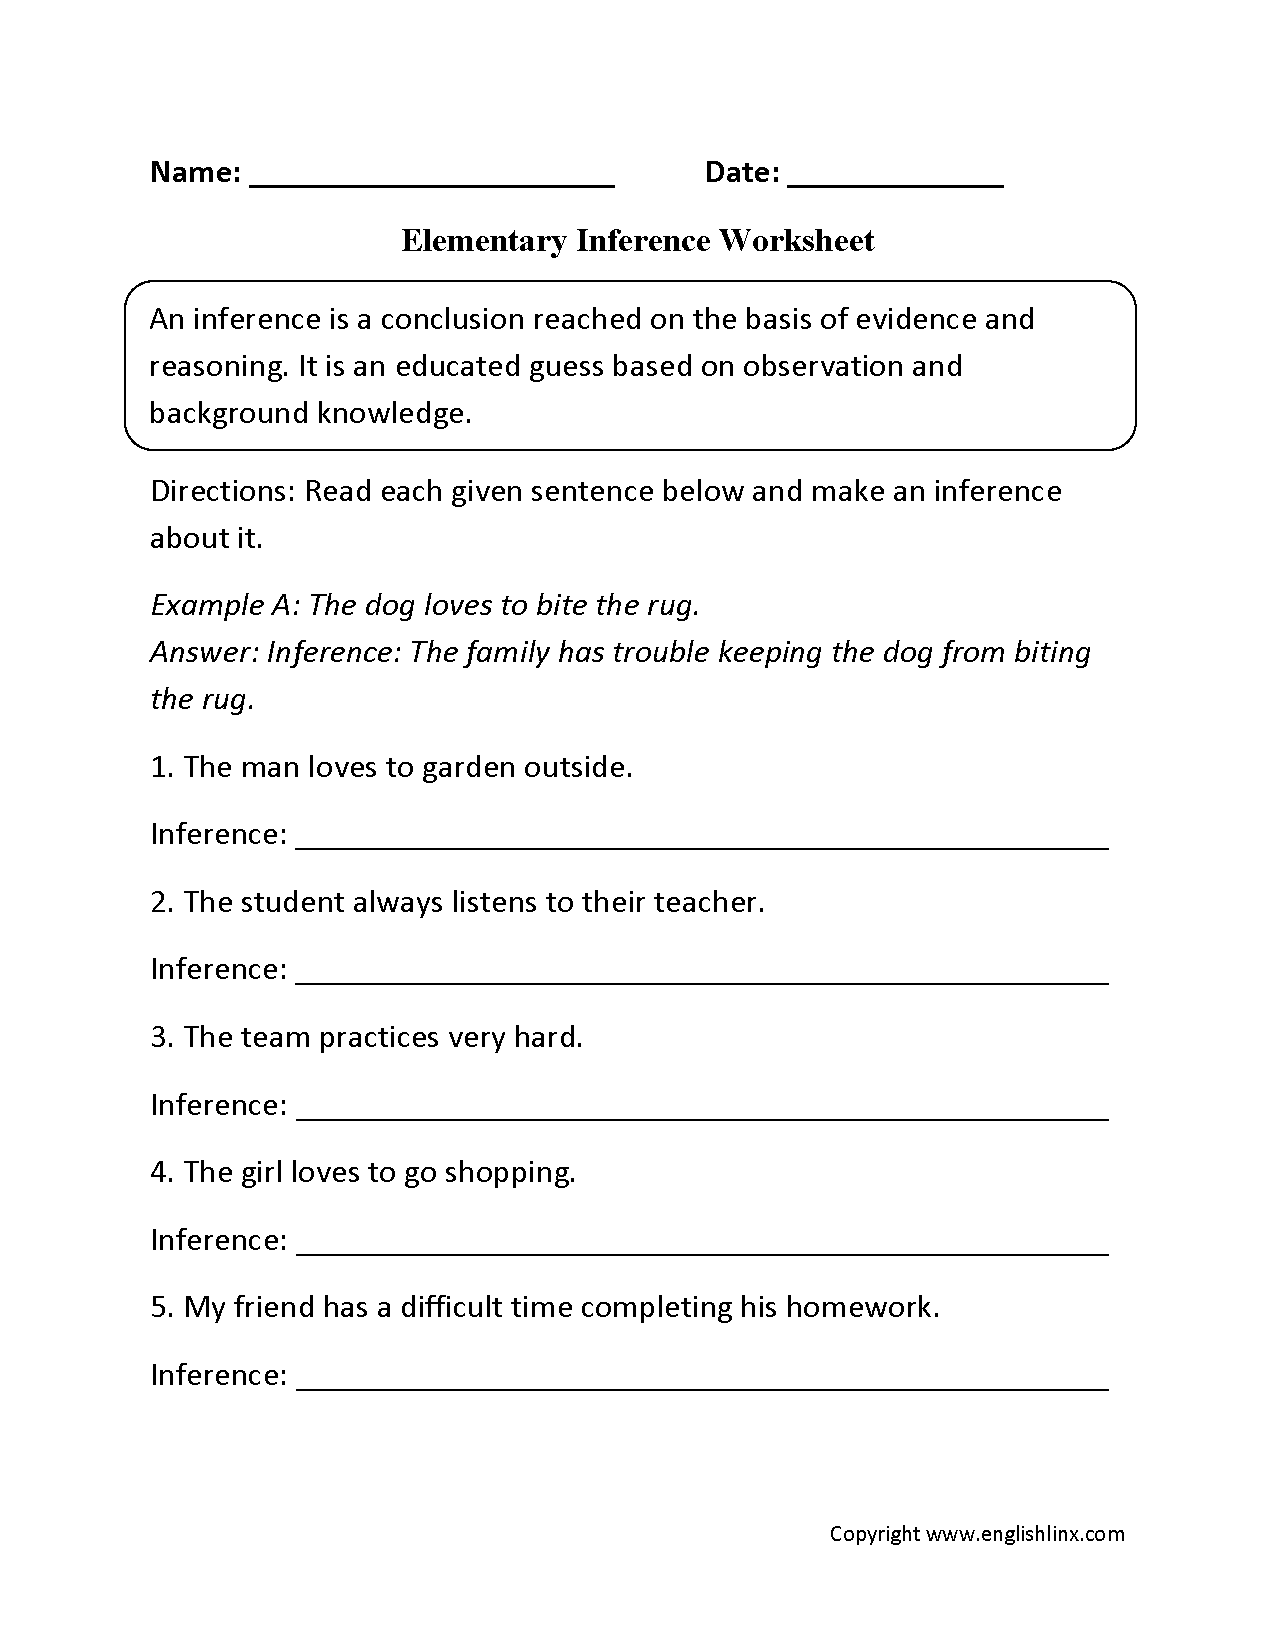 Grade 4 Health Worksheets and Reading Worksheets Inference Worksheets